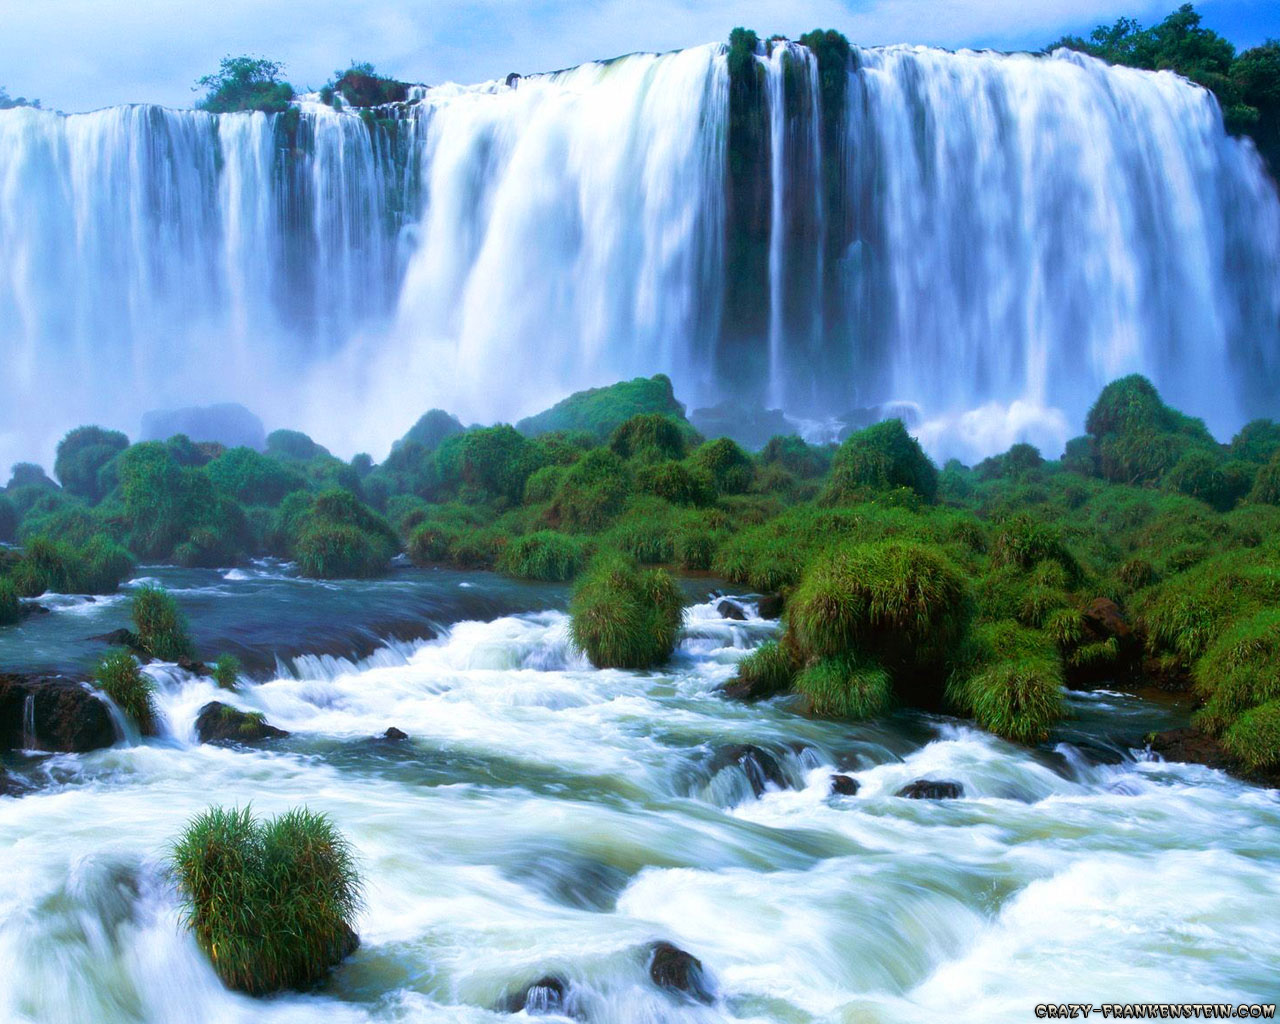 Waterfall photography wallpaper nature zeromin0 - Nature wallpaper of waterfall ...